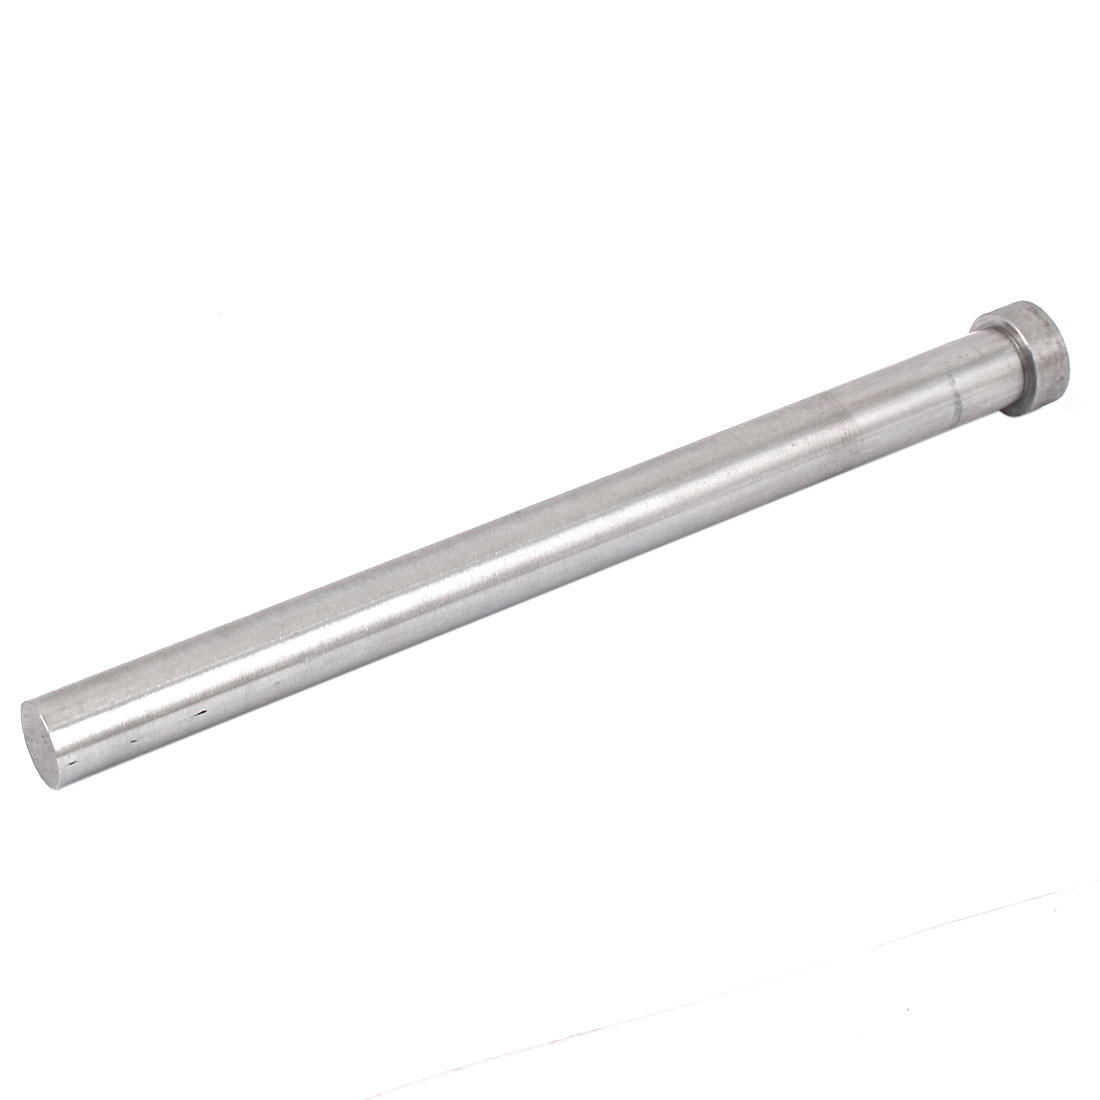 15mm Diameter Round Tip Steel Straight Ejector Pin Punch 200mm Long Silver Gray